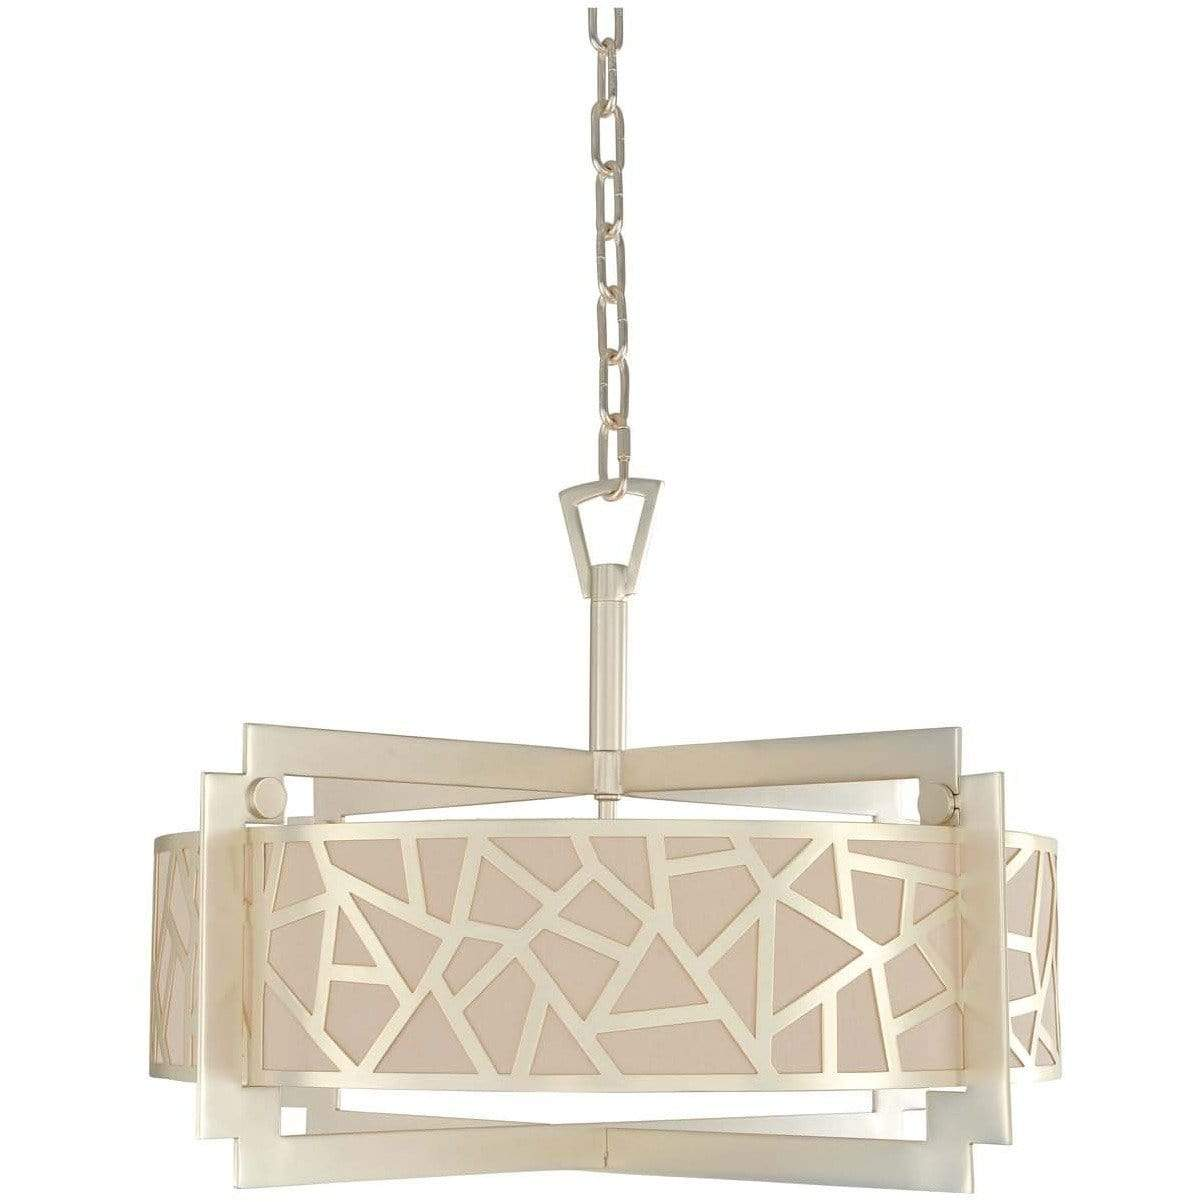 Kalco Lighting Dual Mounts Rose Silver Miramar 26 Inch Convertible Pendant - Semi Flush Mount By Kalco Lighting 303553